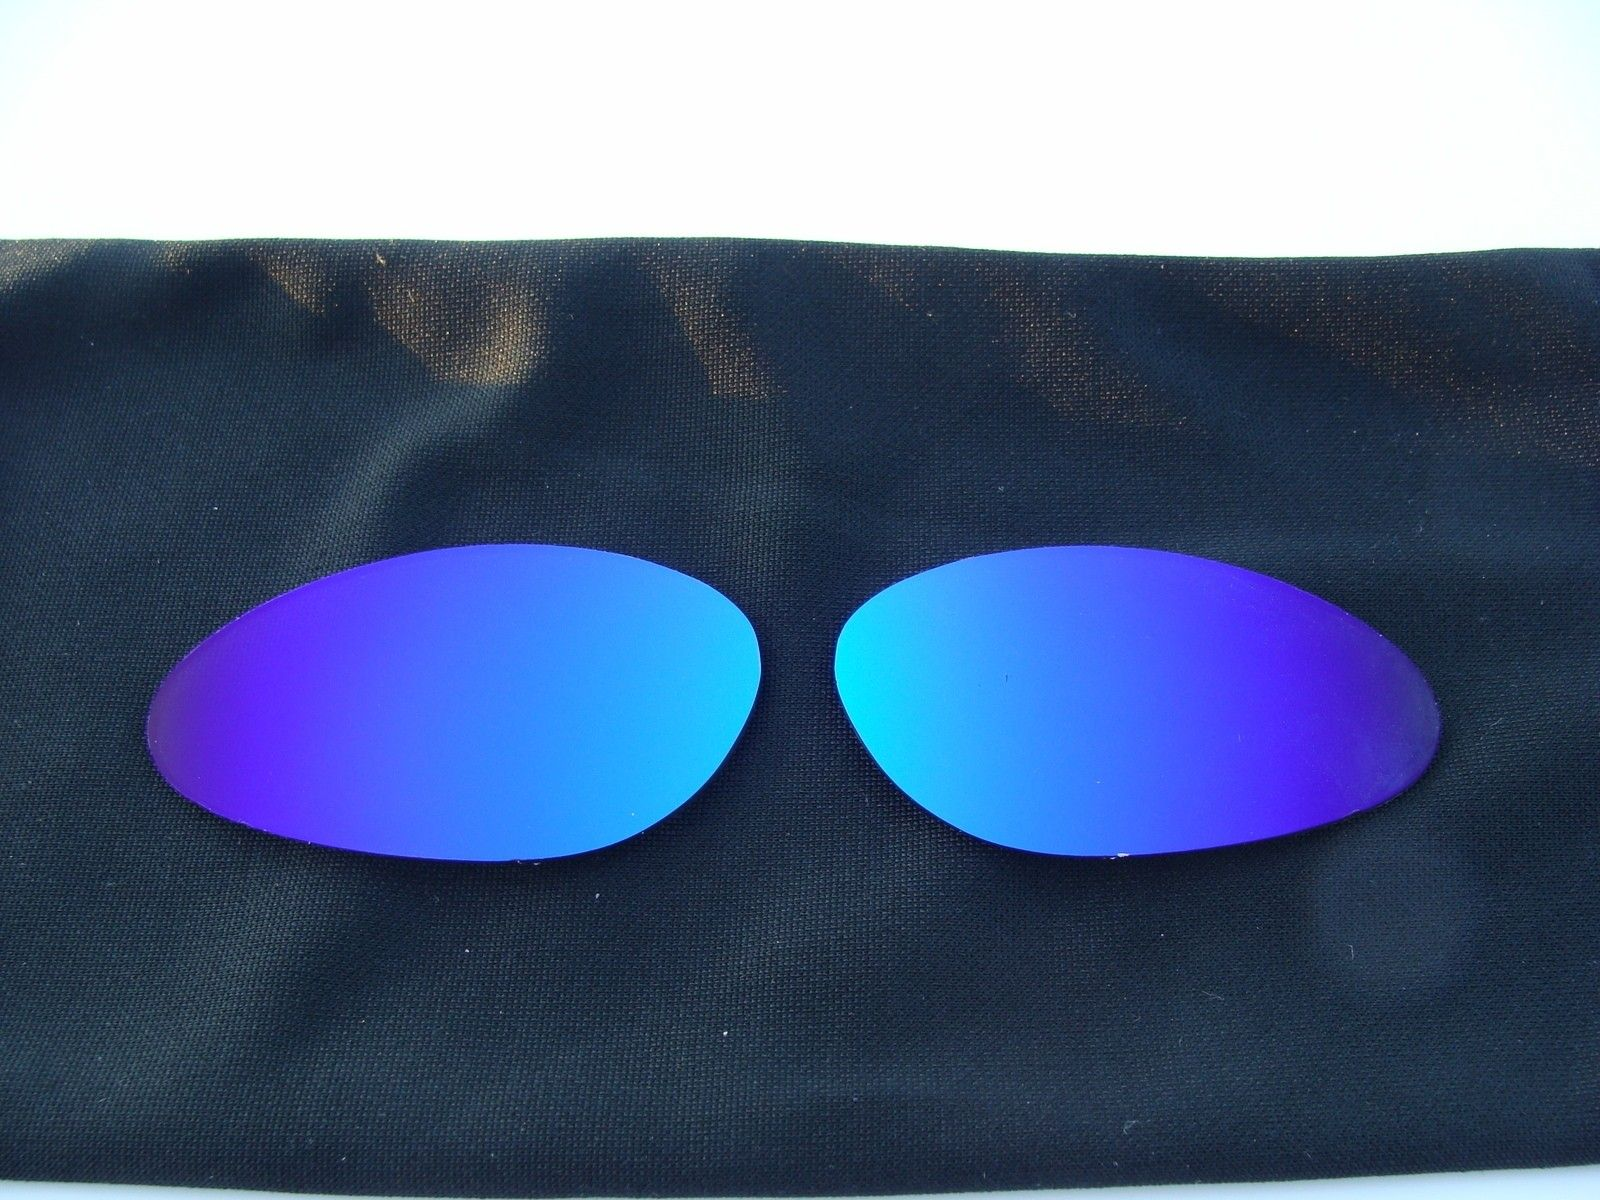 Custom Cut (Oakley) Lenses For Penny 10/011: 24k Polar, Red/Purple, Jade, Blue, Fire - DSC04604.JPG